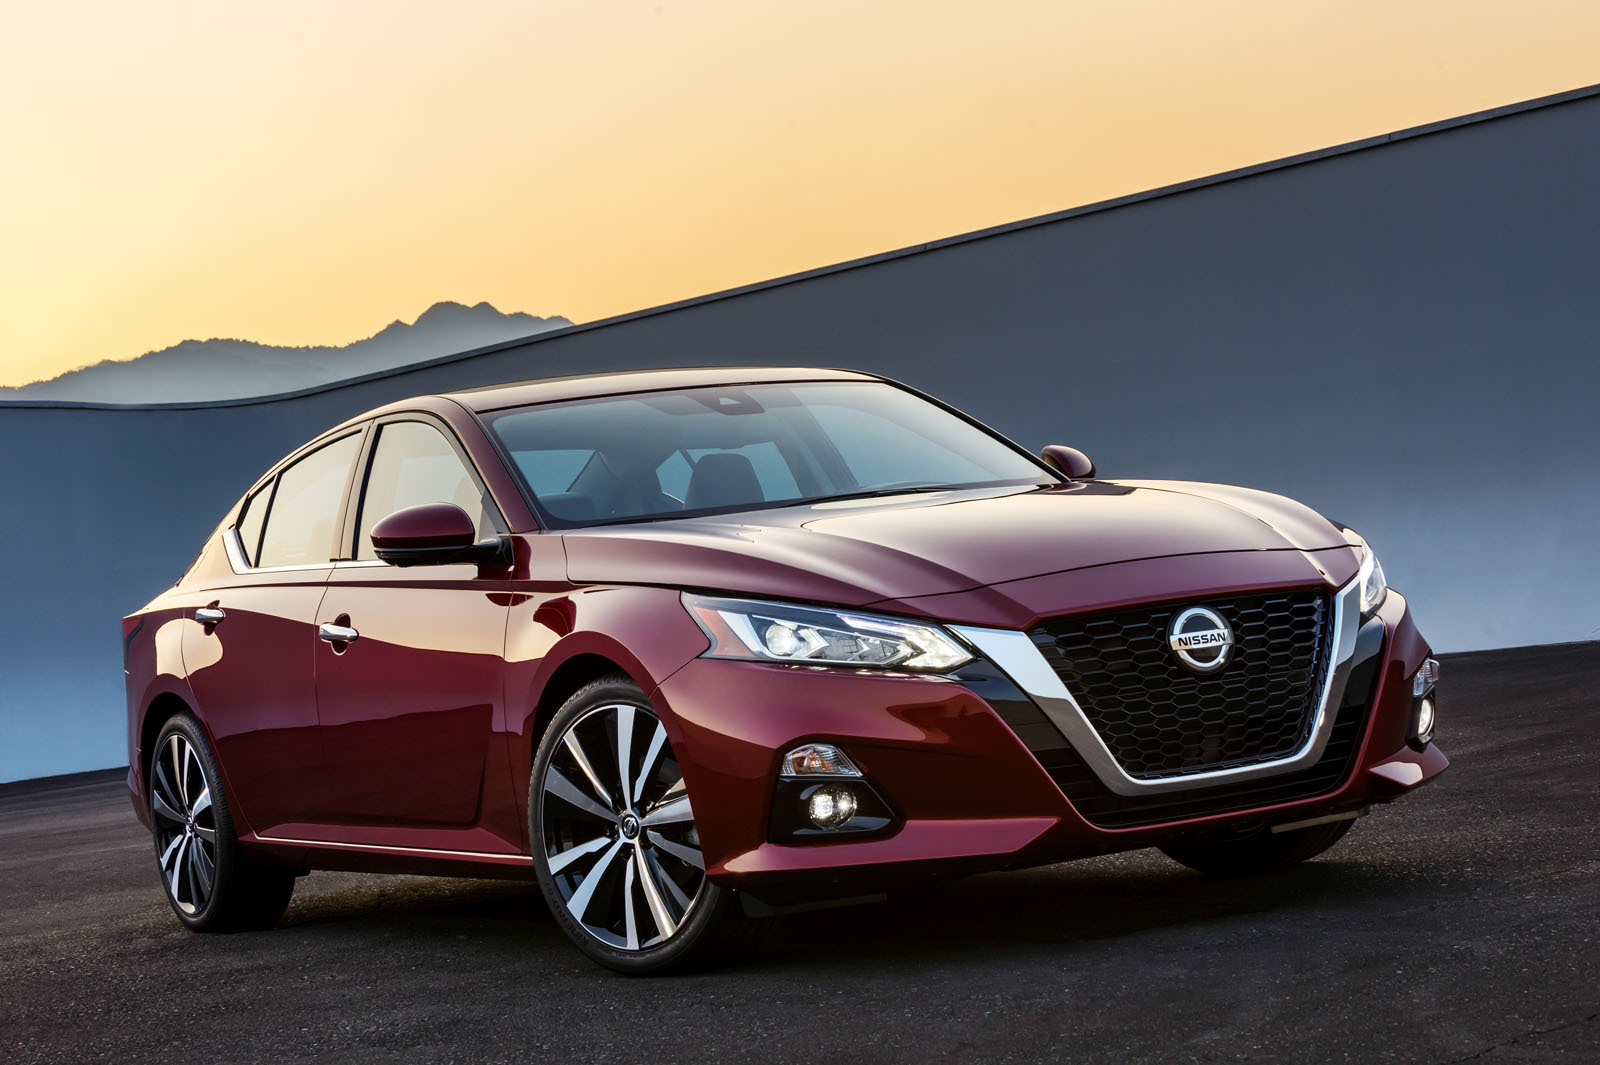 2020 - [Nissan] Sentra / Sylphy ?u=http%3A%2F%2Fwww.autoguide.com%2Fblog%2Fwp-content%2Fgallery%2F2019-nissan-altima-debut%2F2019-Nissan-Altima-01